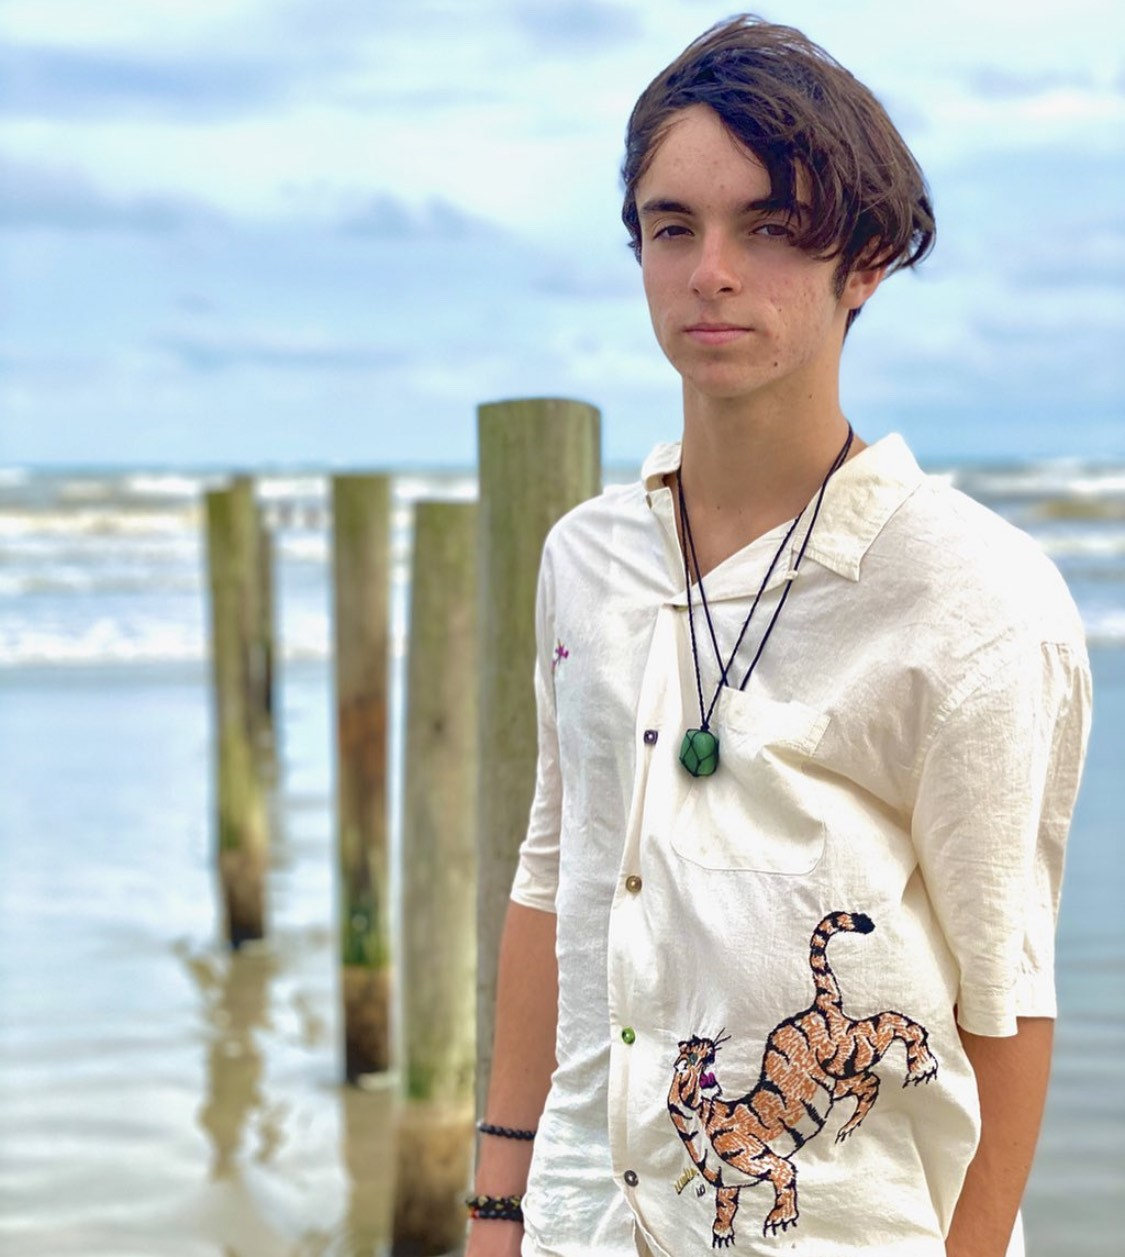 Dylan Peltier: The Young Entrepreneur Who's Changing Artists Lives